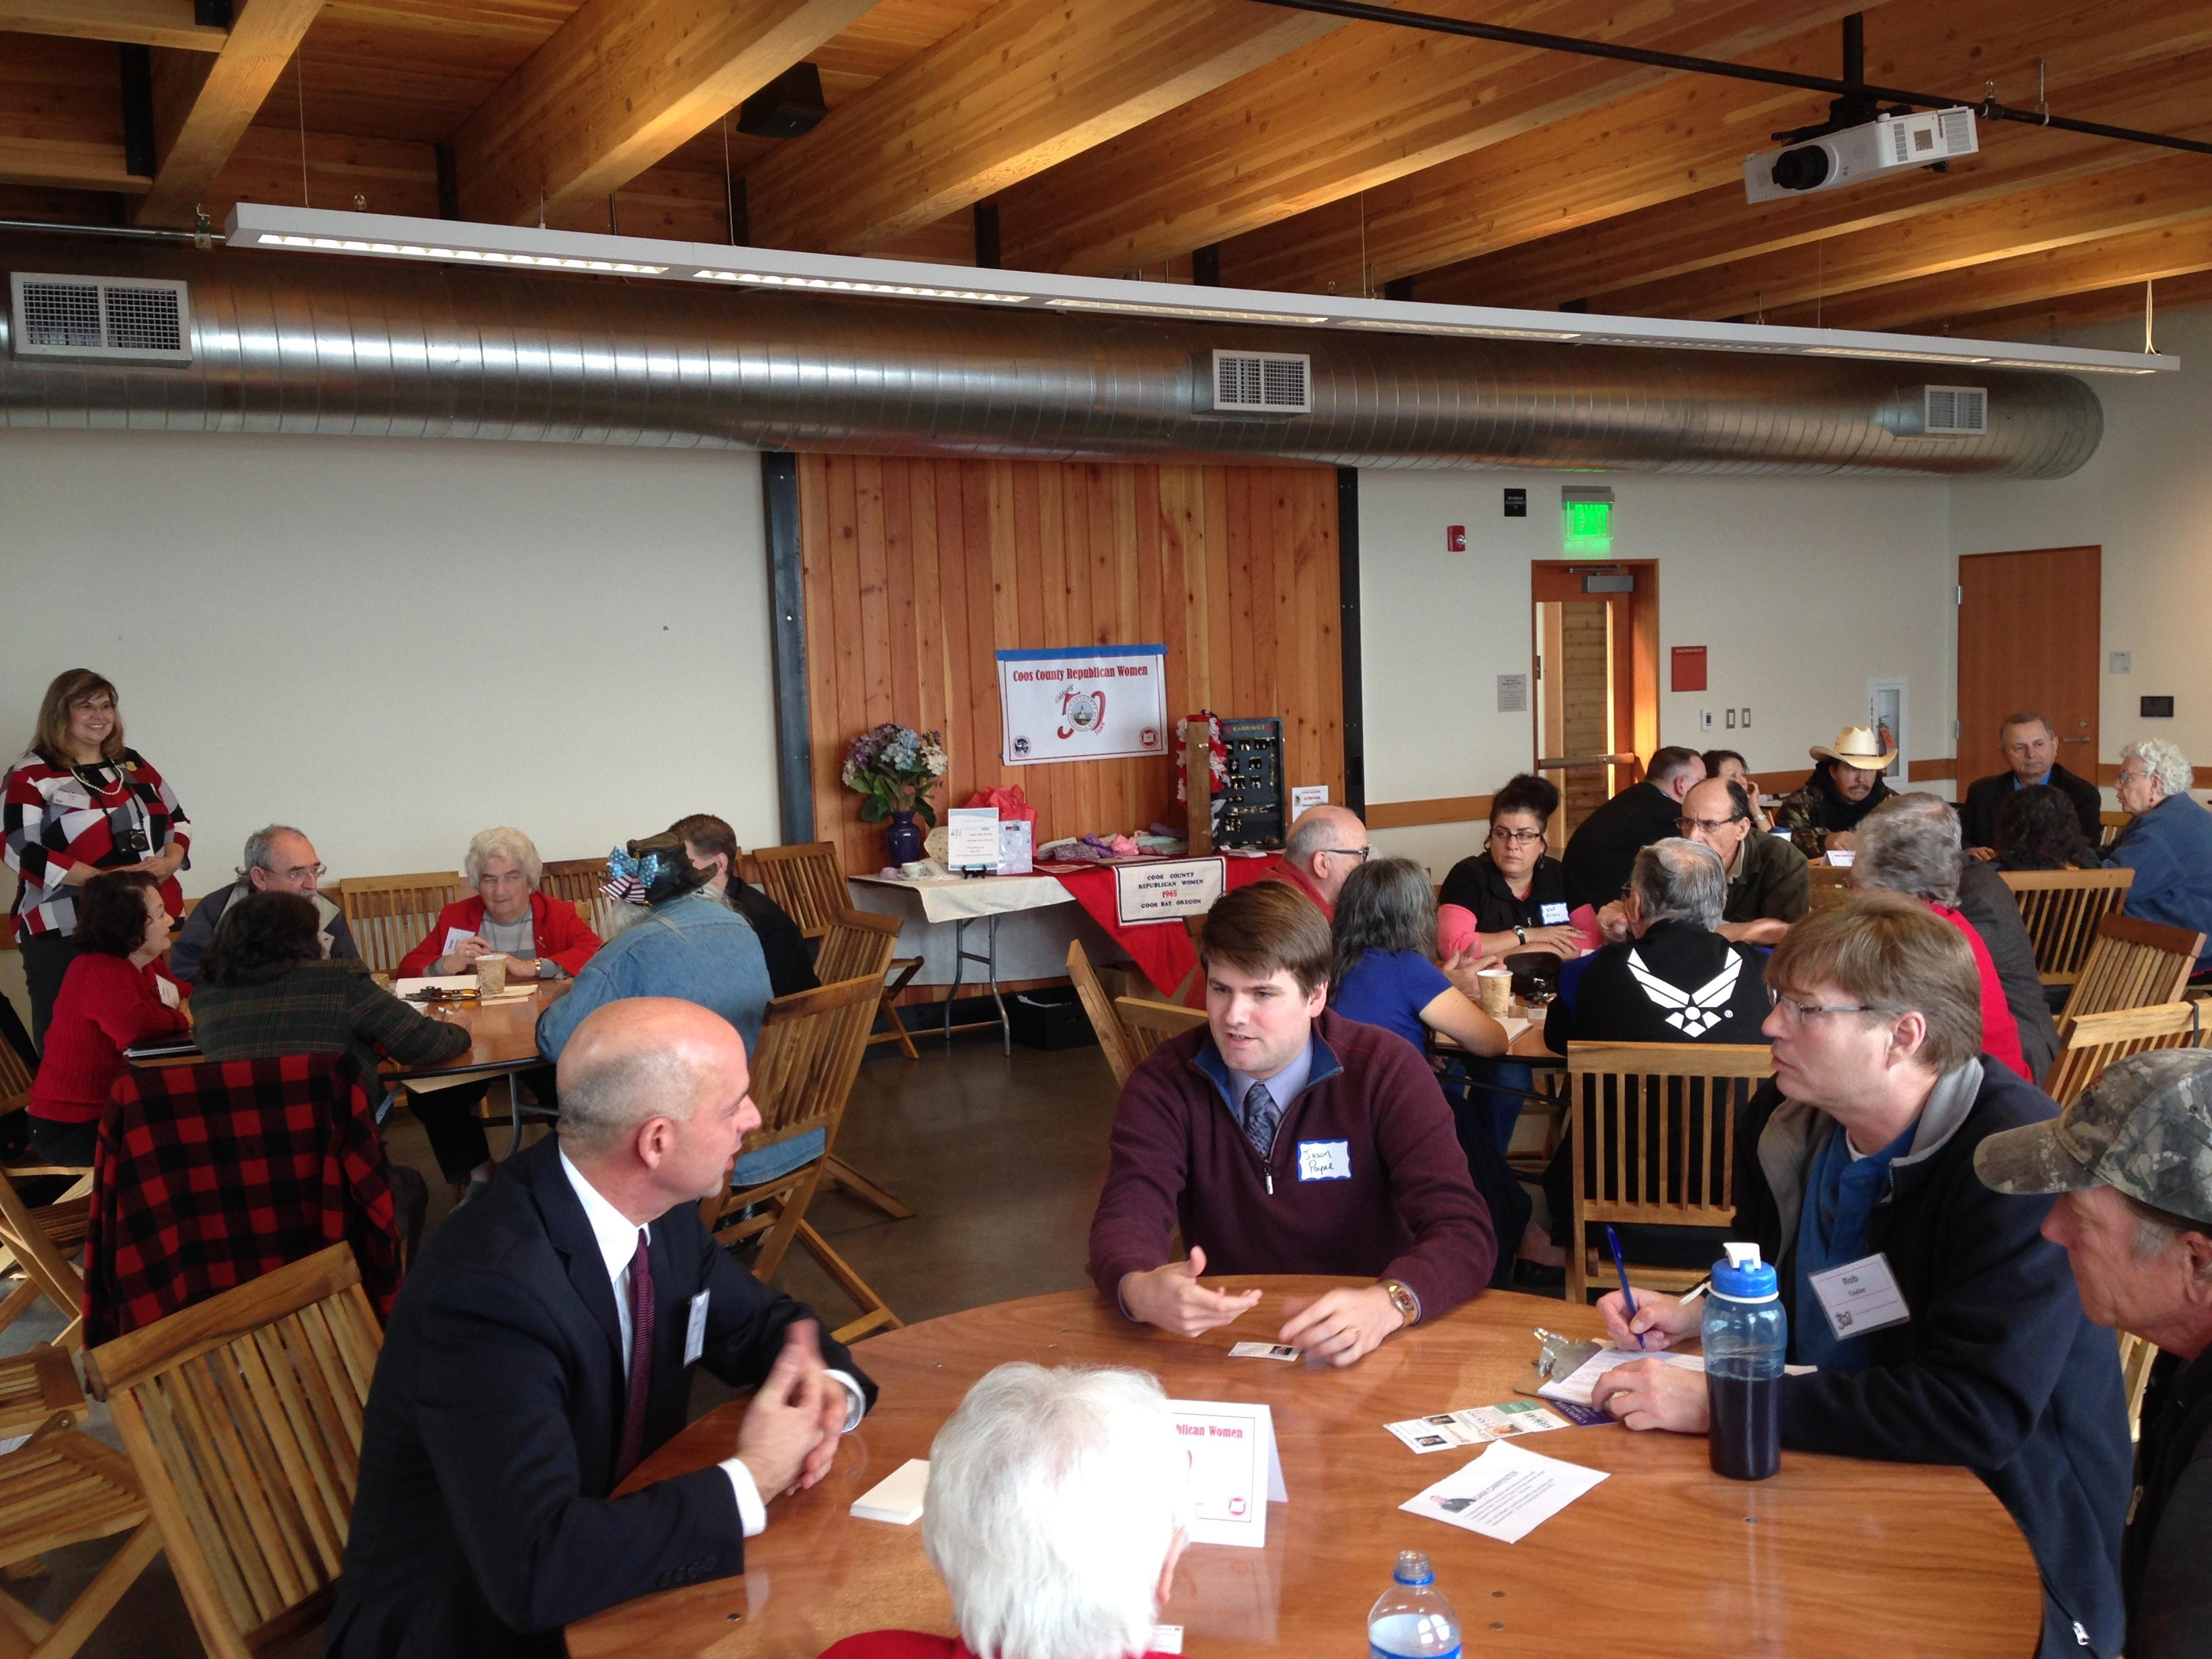 Congressional candidates speak at roundtable hosted by Coos County Republican Women's Club on February 20, 2016.